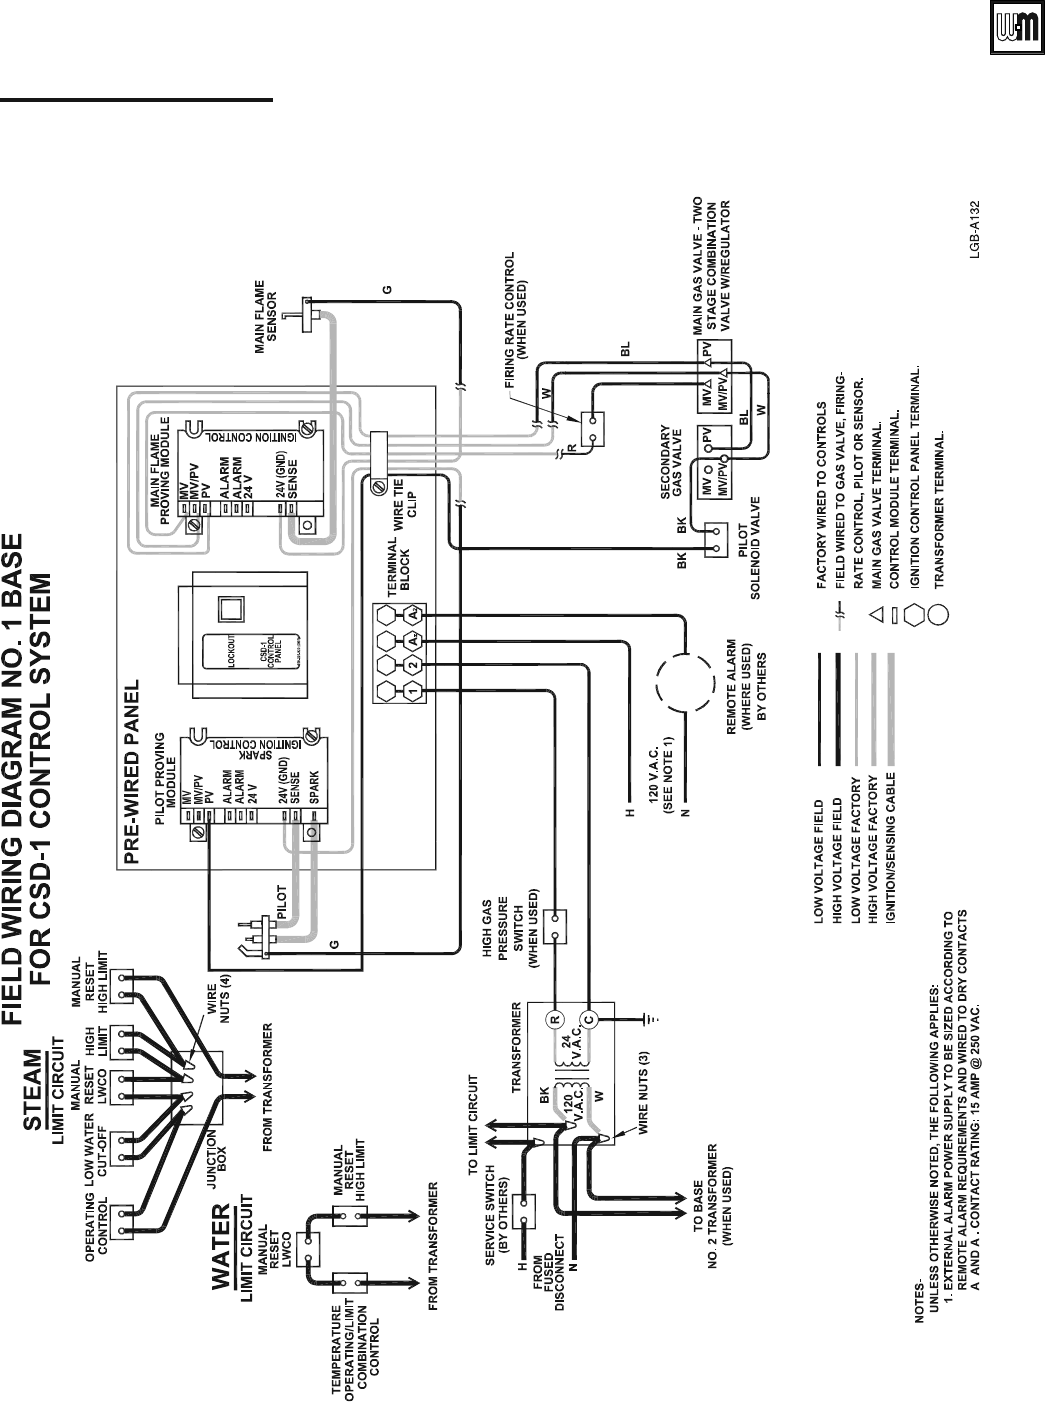 Page 9 Of Weil Mclain Boiler Lgb 20 User Guide Manualsonlinecom Schematic Diagram Csd 1 Control System Natural Gas